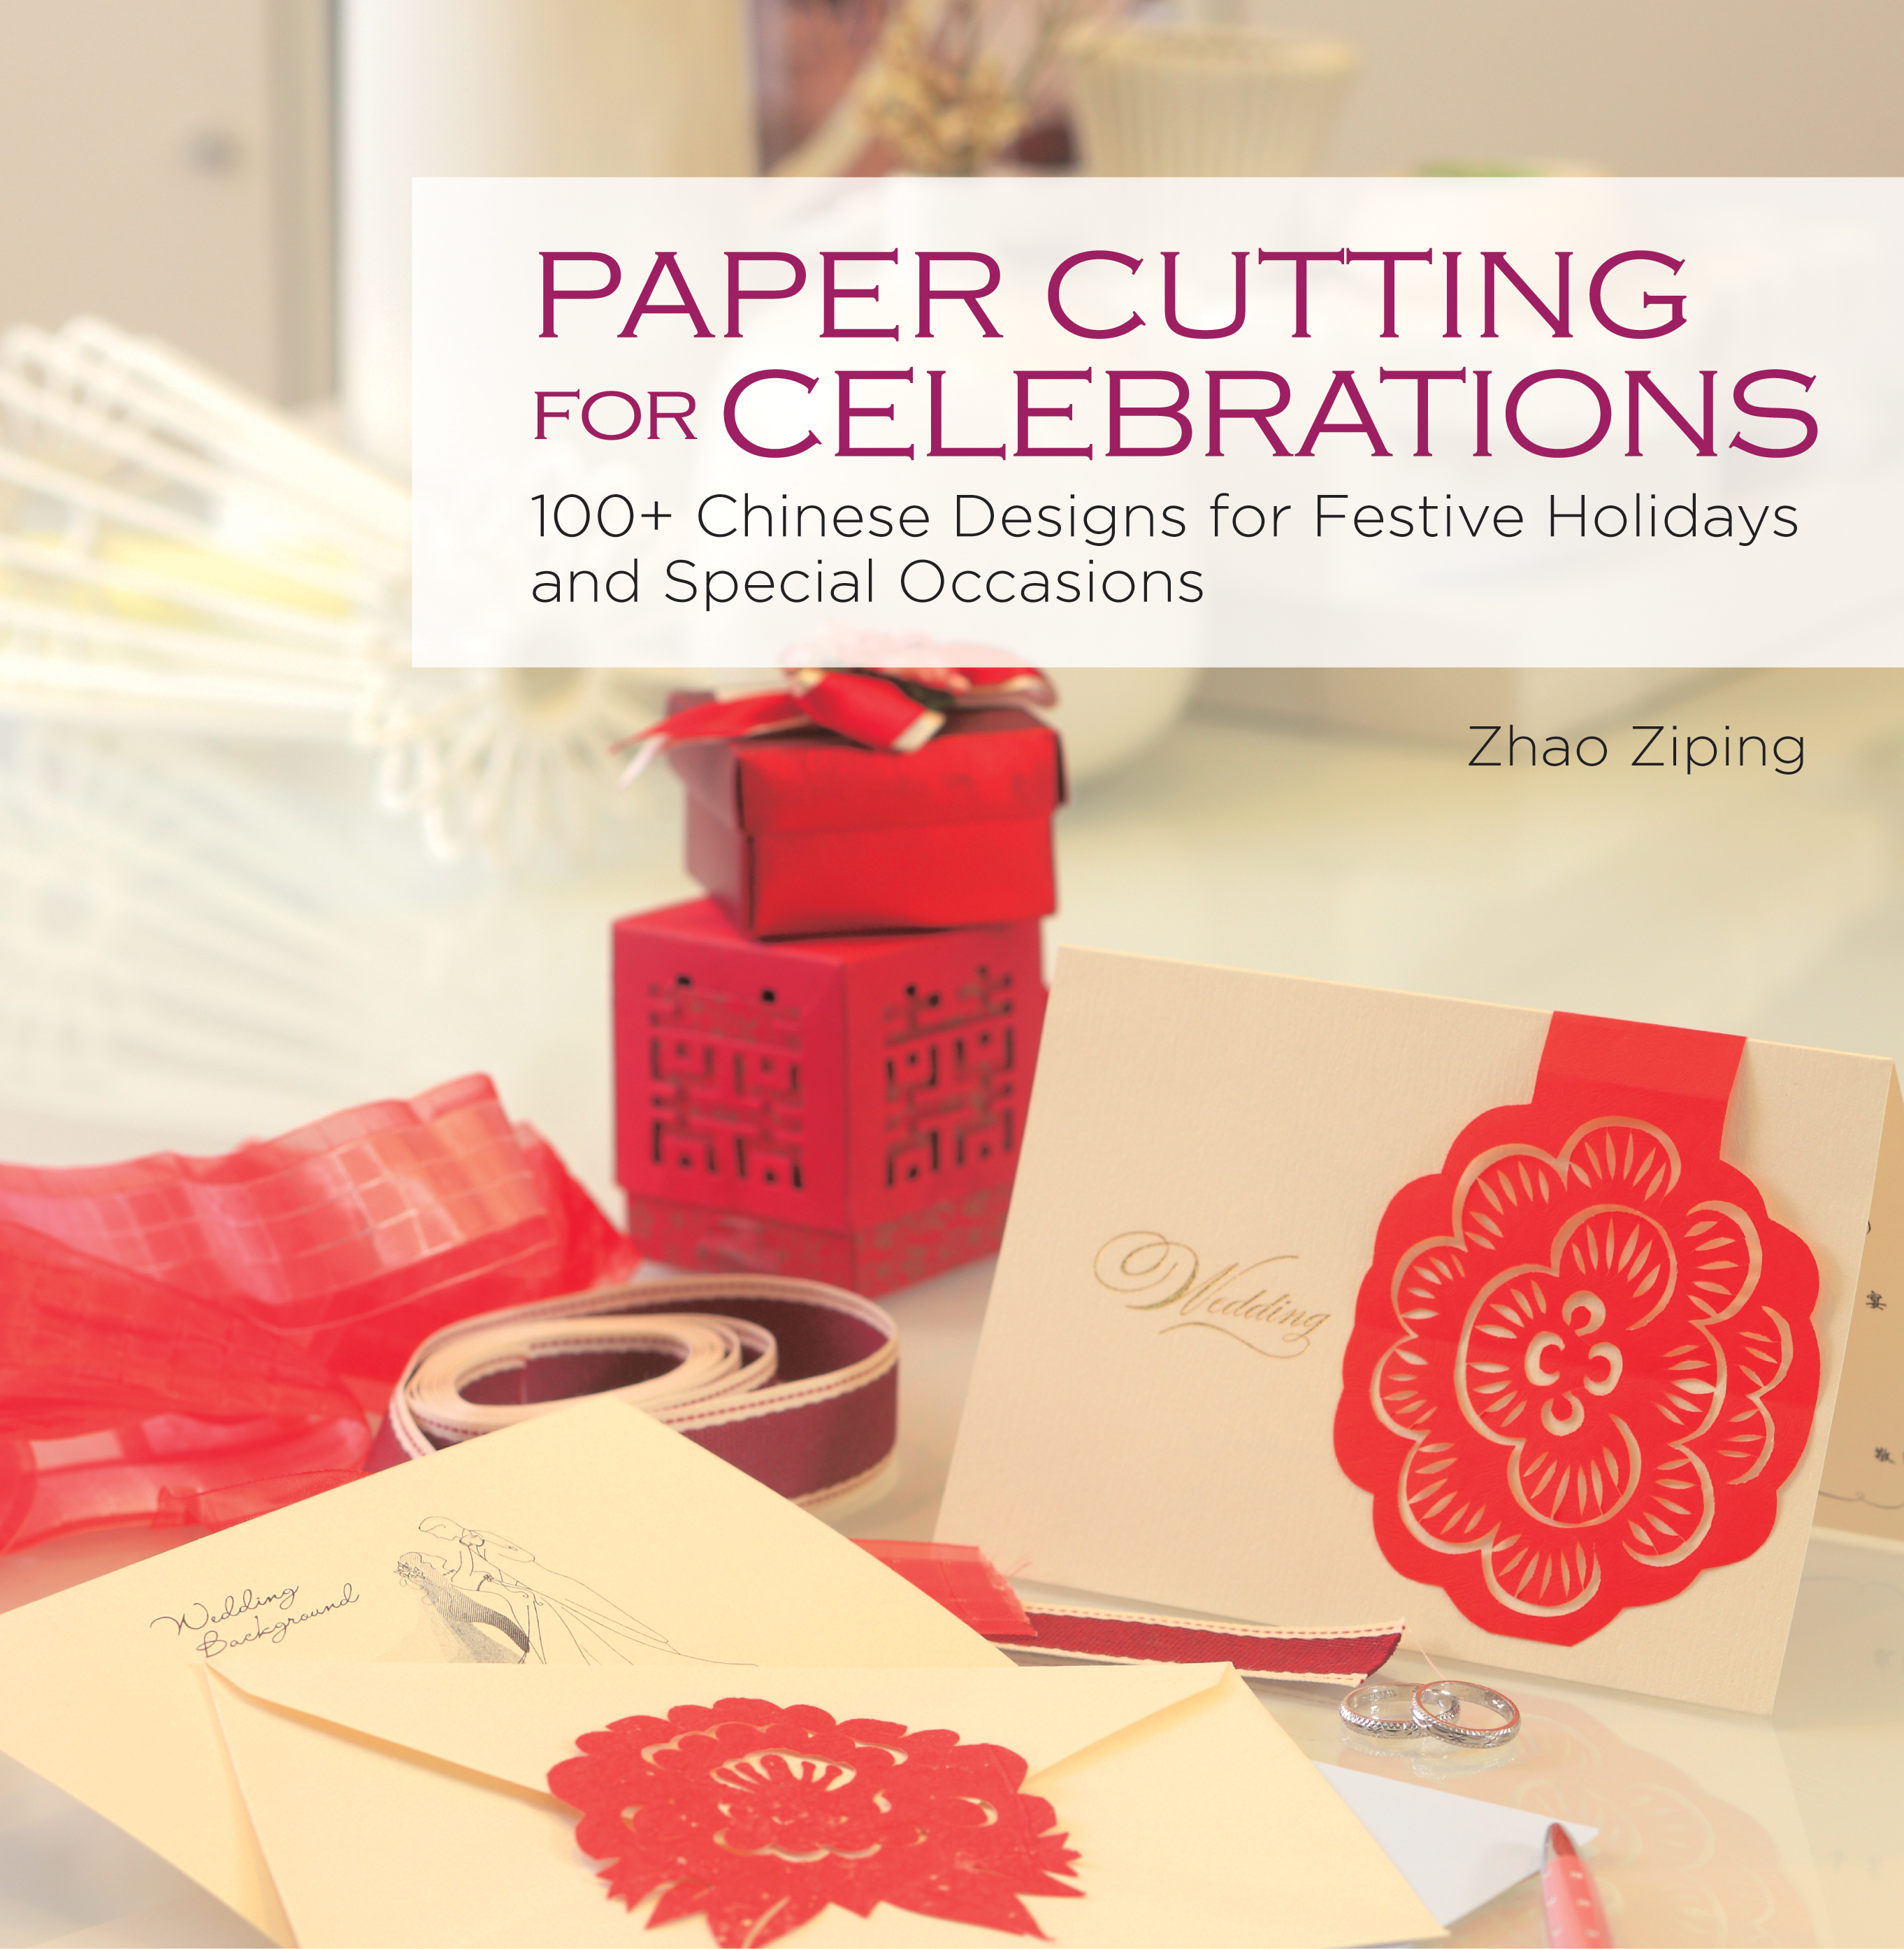 Paper-cutting-for-celebrations-9781602201491_hr